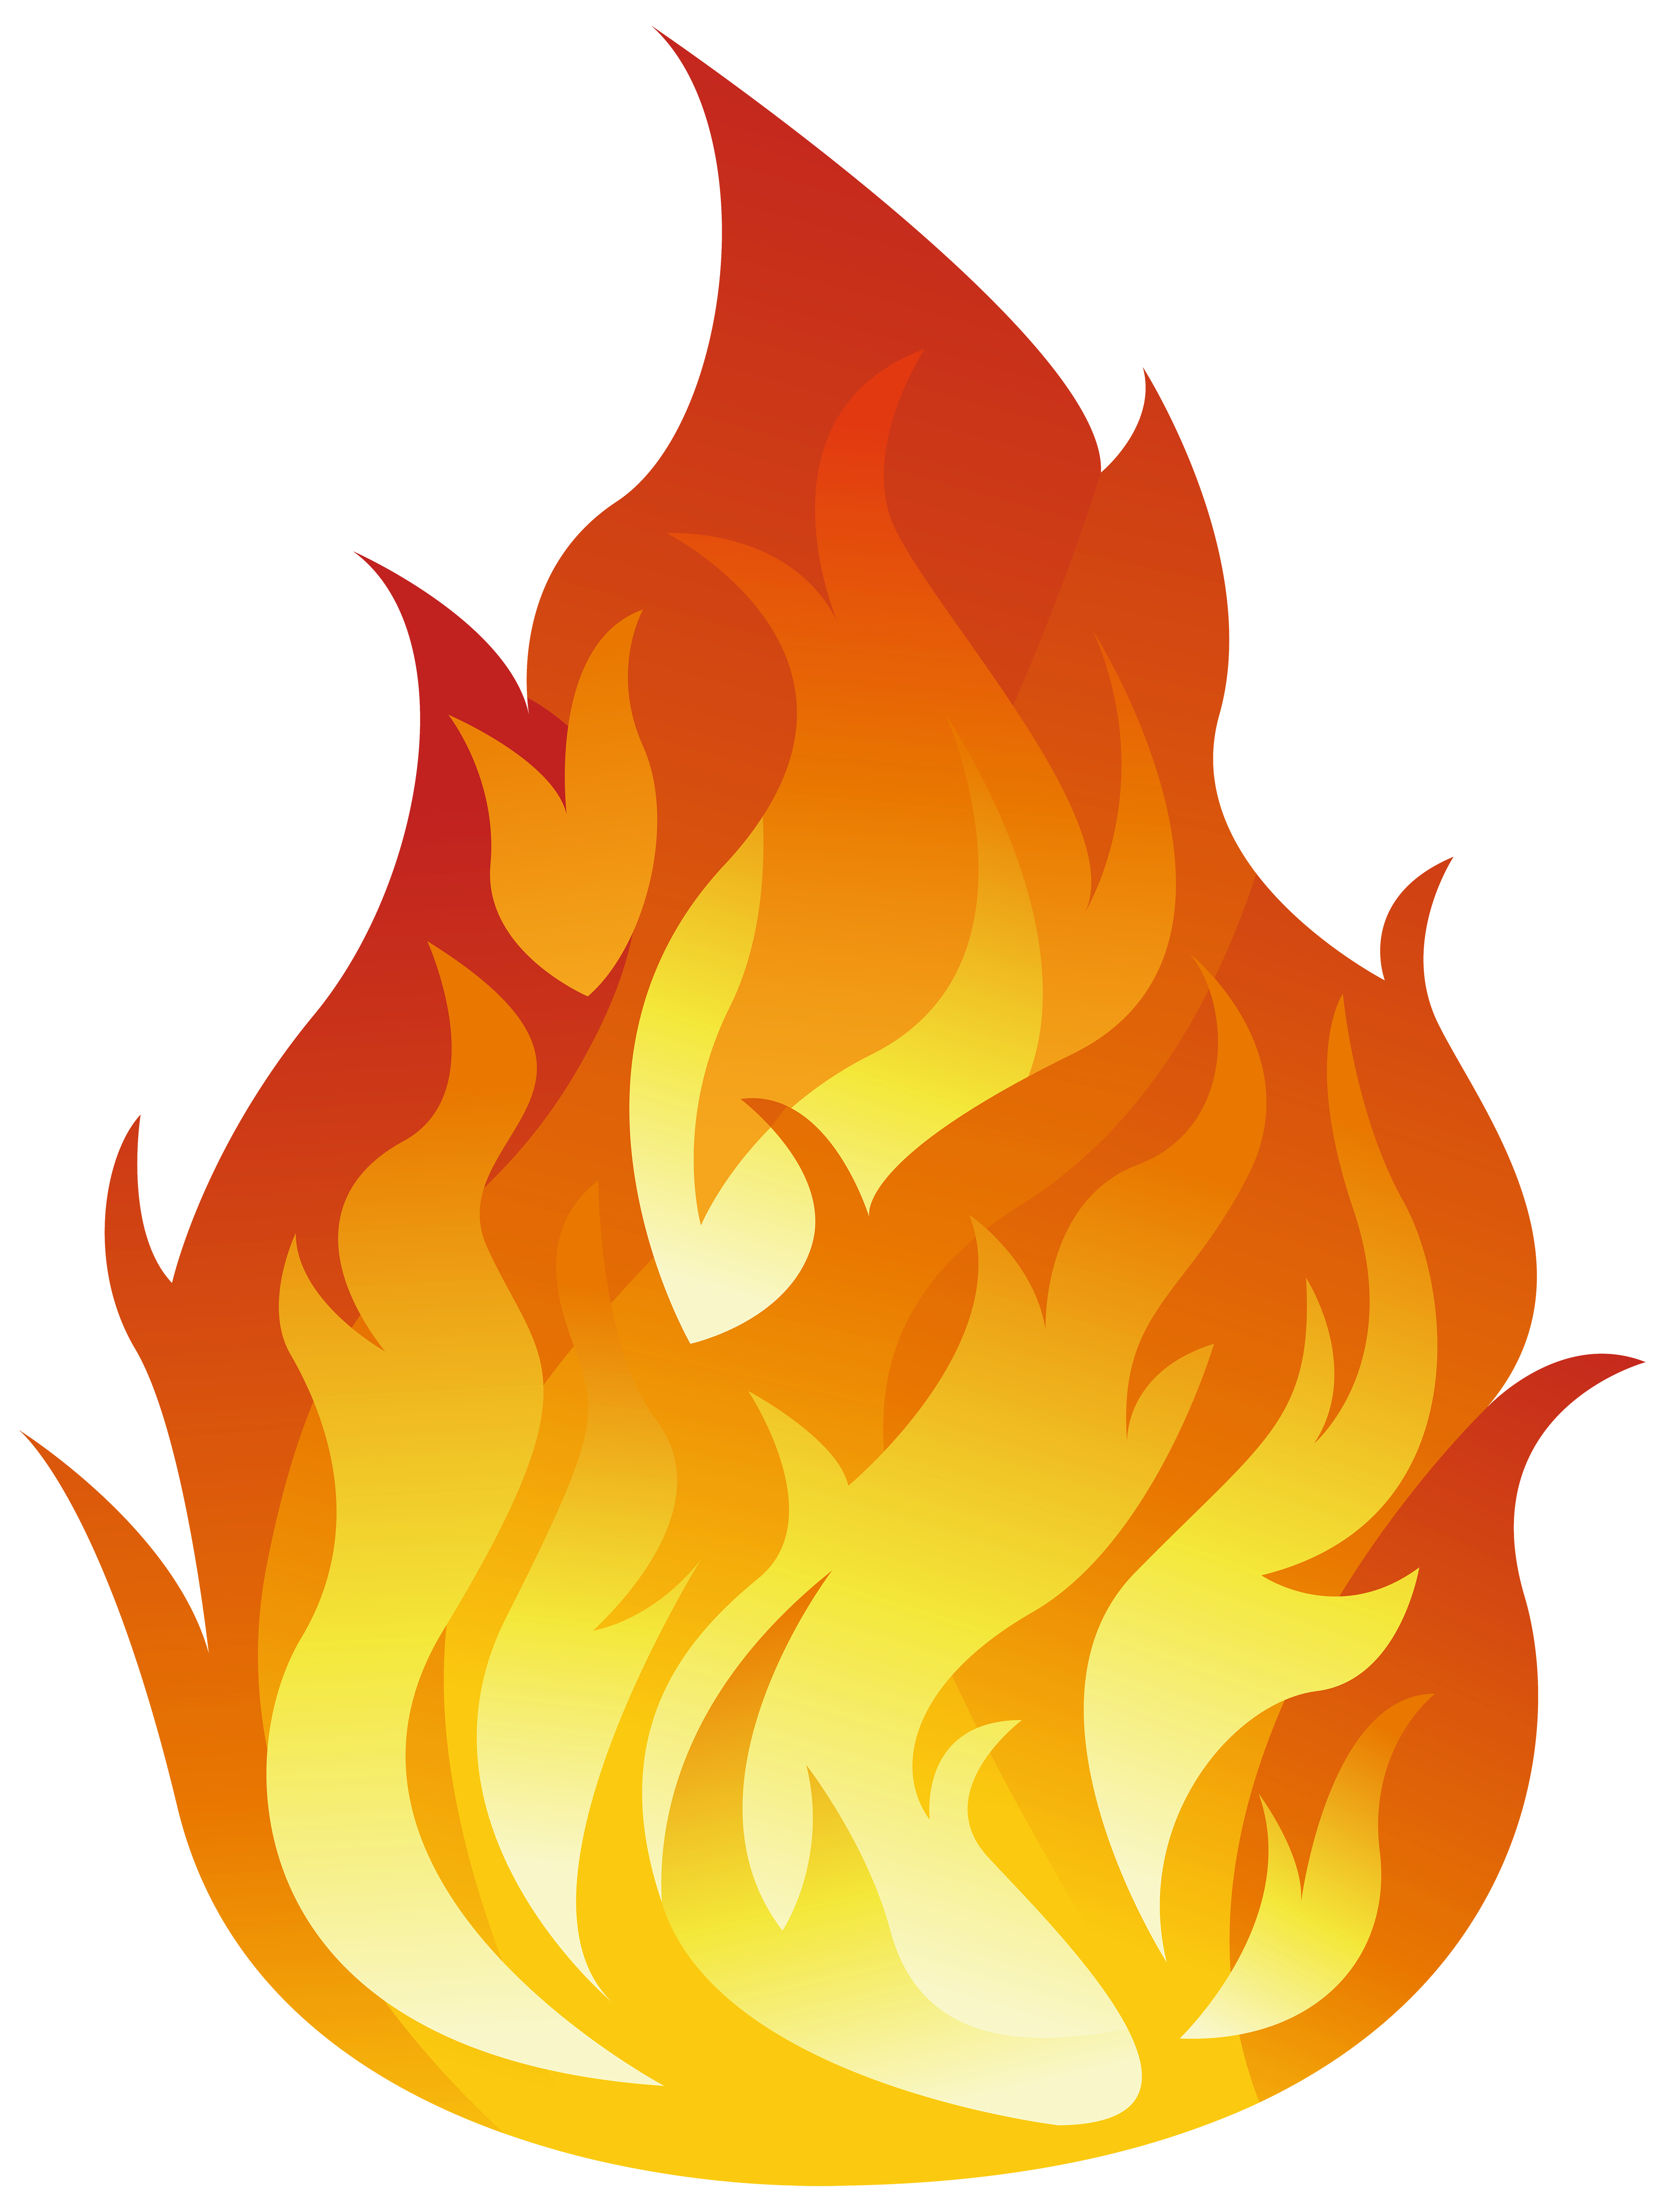 Fire Flames Transparent 23 PNG Images